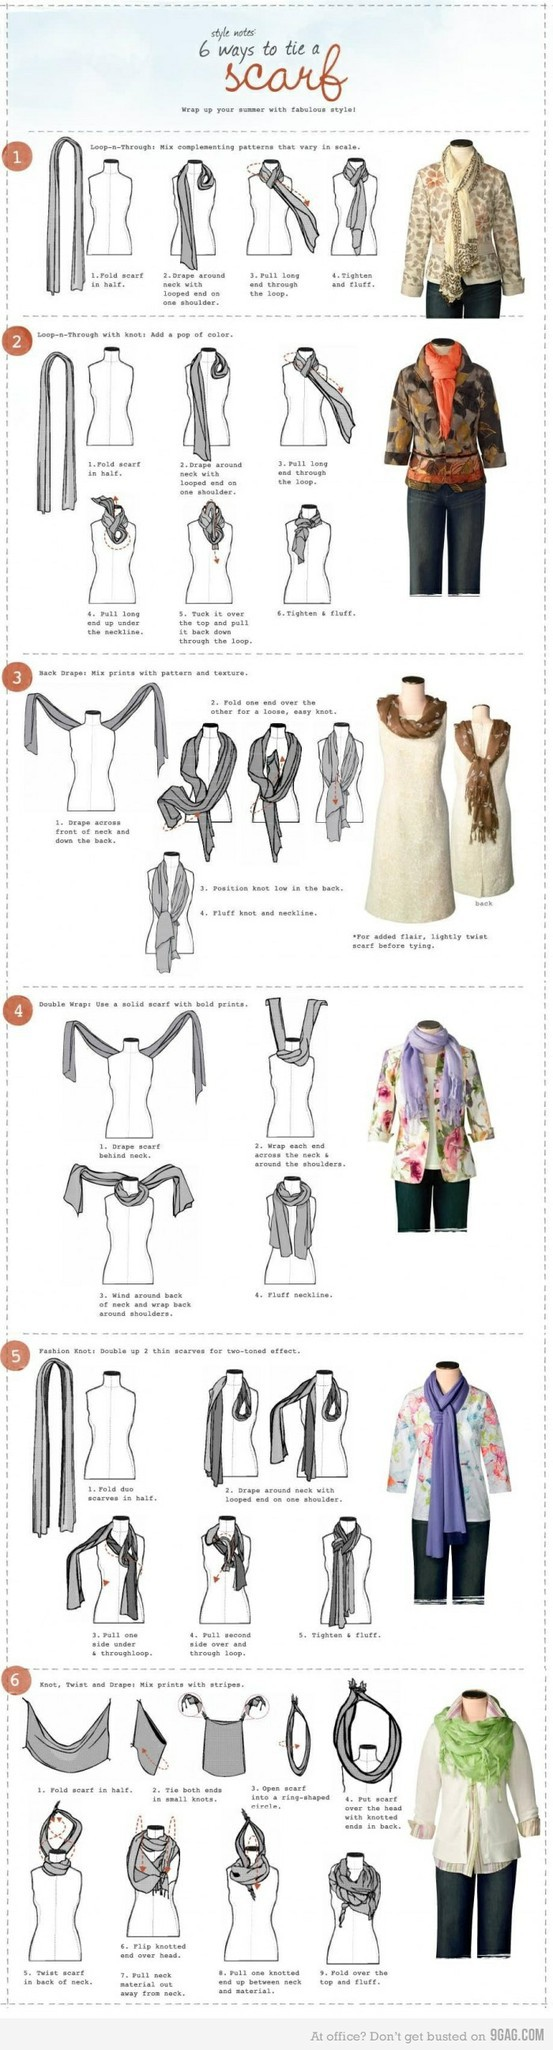 6 ways to tie a scarf printable